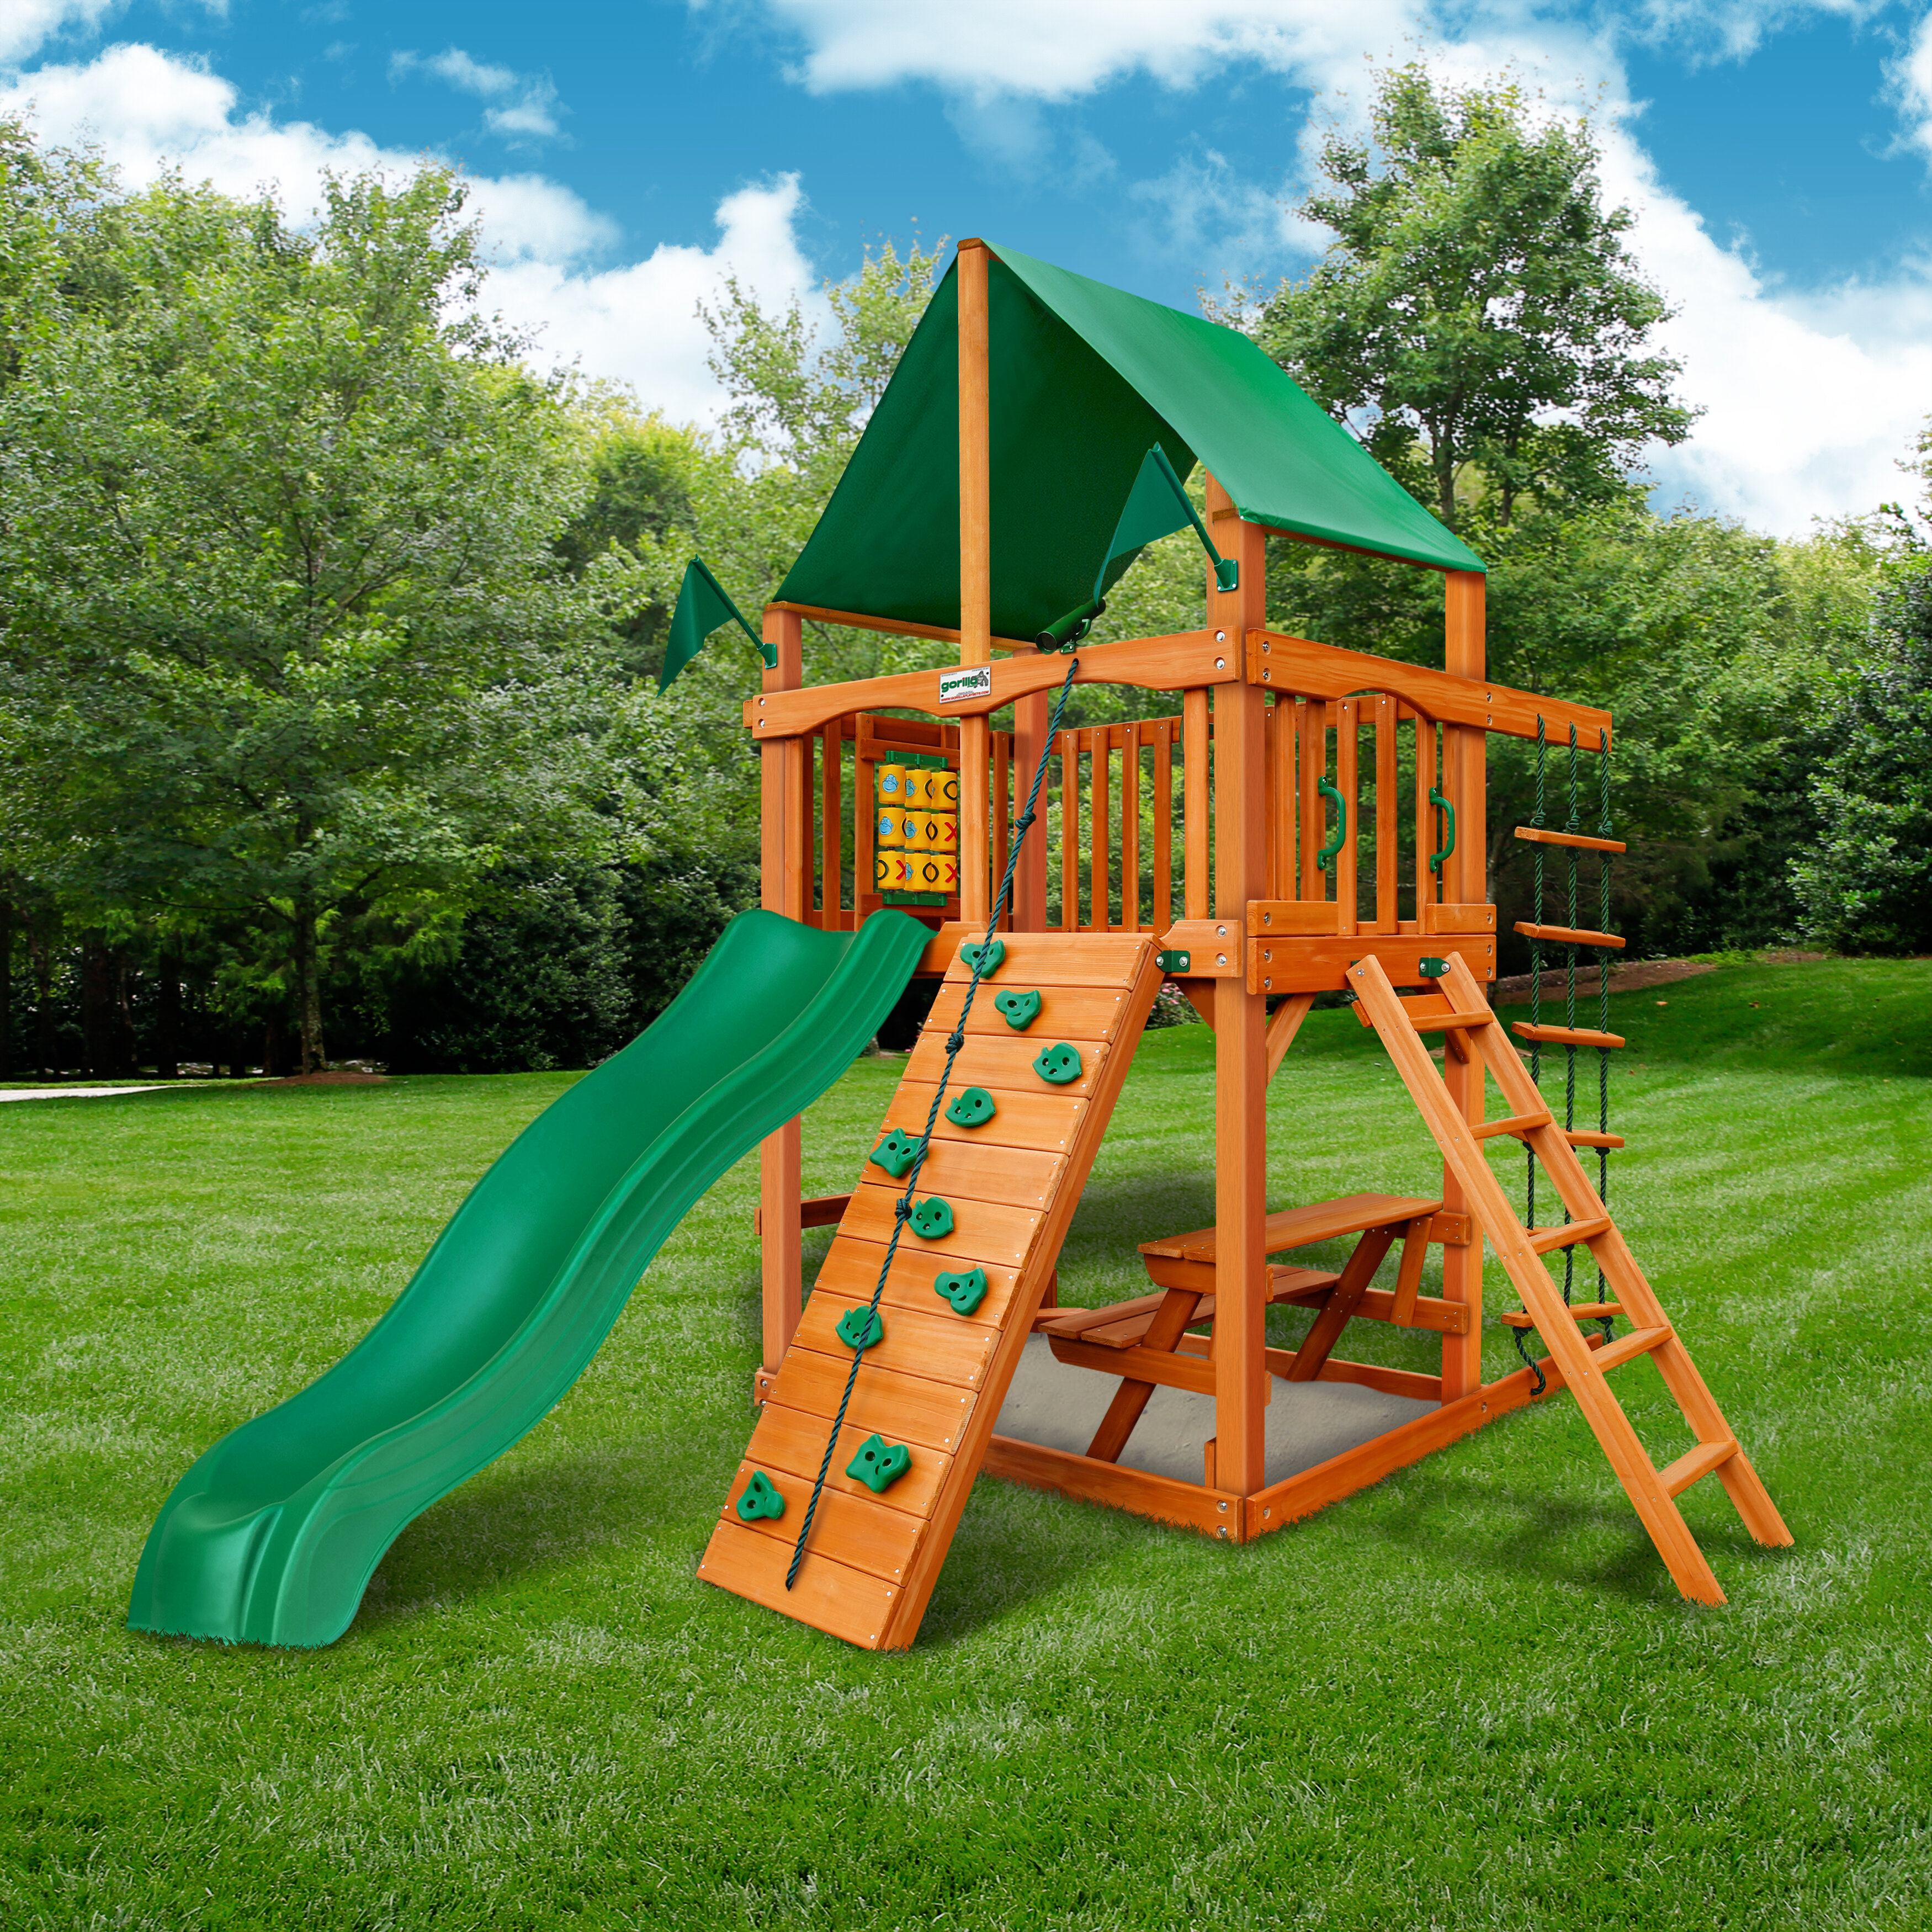 Gorilla Playsets Chateau Tower Swing Set With Canopy Roof Wayfair